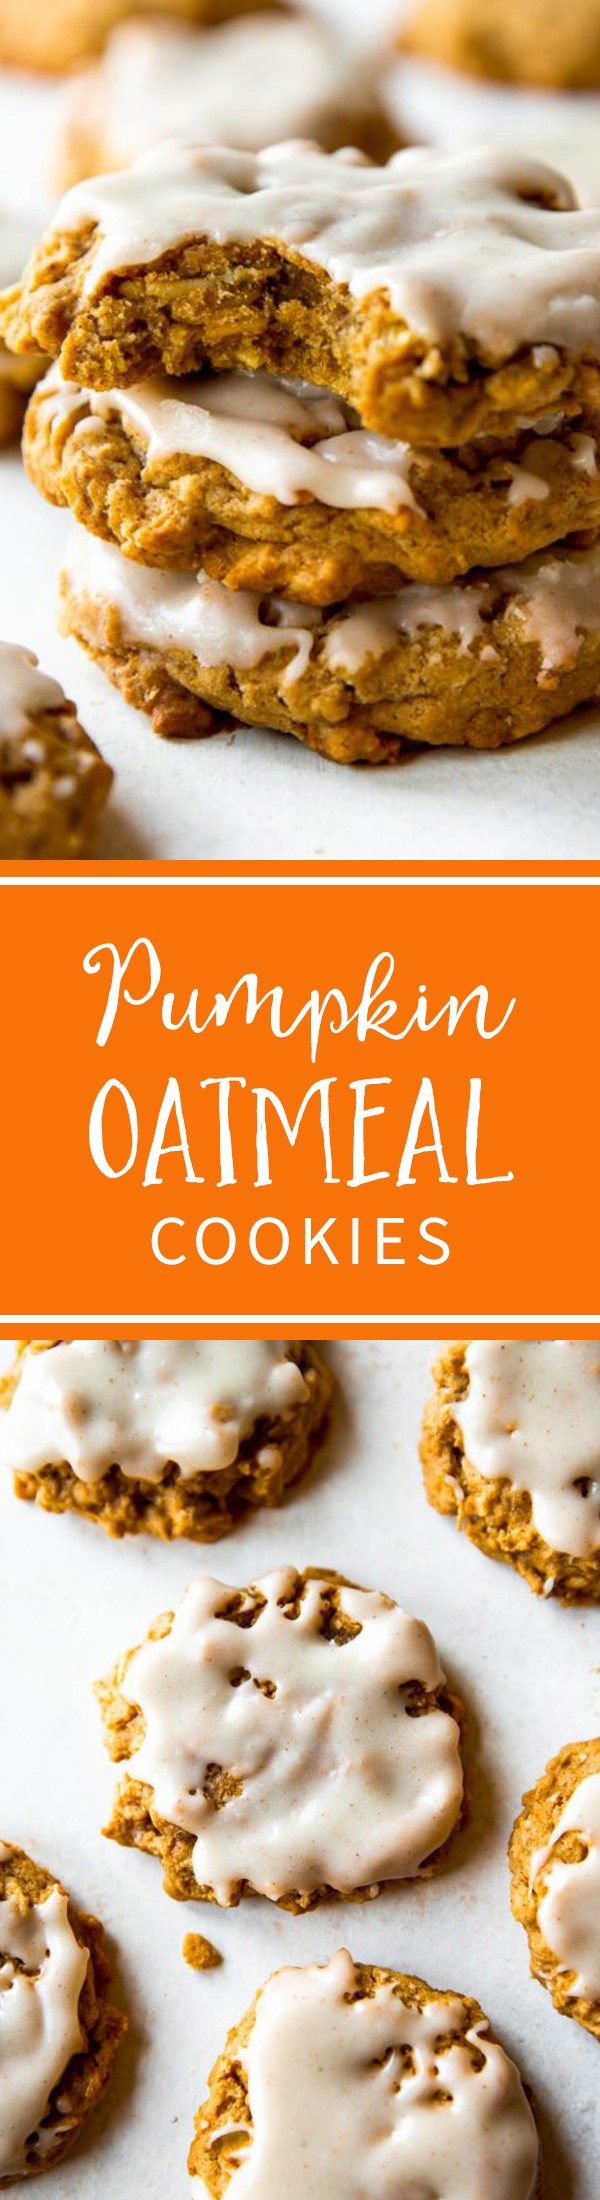 Get the recipe Pumpkin Oatmeal Cookies @recipes_to_go